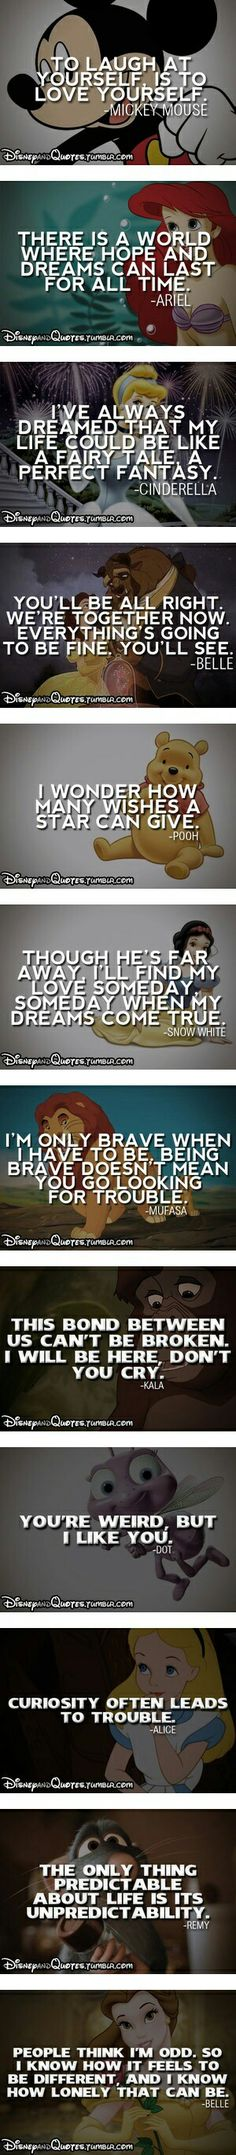 Disney quotes, obviously cool. Disney Fun, Disney Magic, Disney Pixar, Disney Characters, Disney Stuff, Disney Princesses List, Disney Nerd, Disney Girls, Tarzan Disney